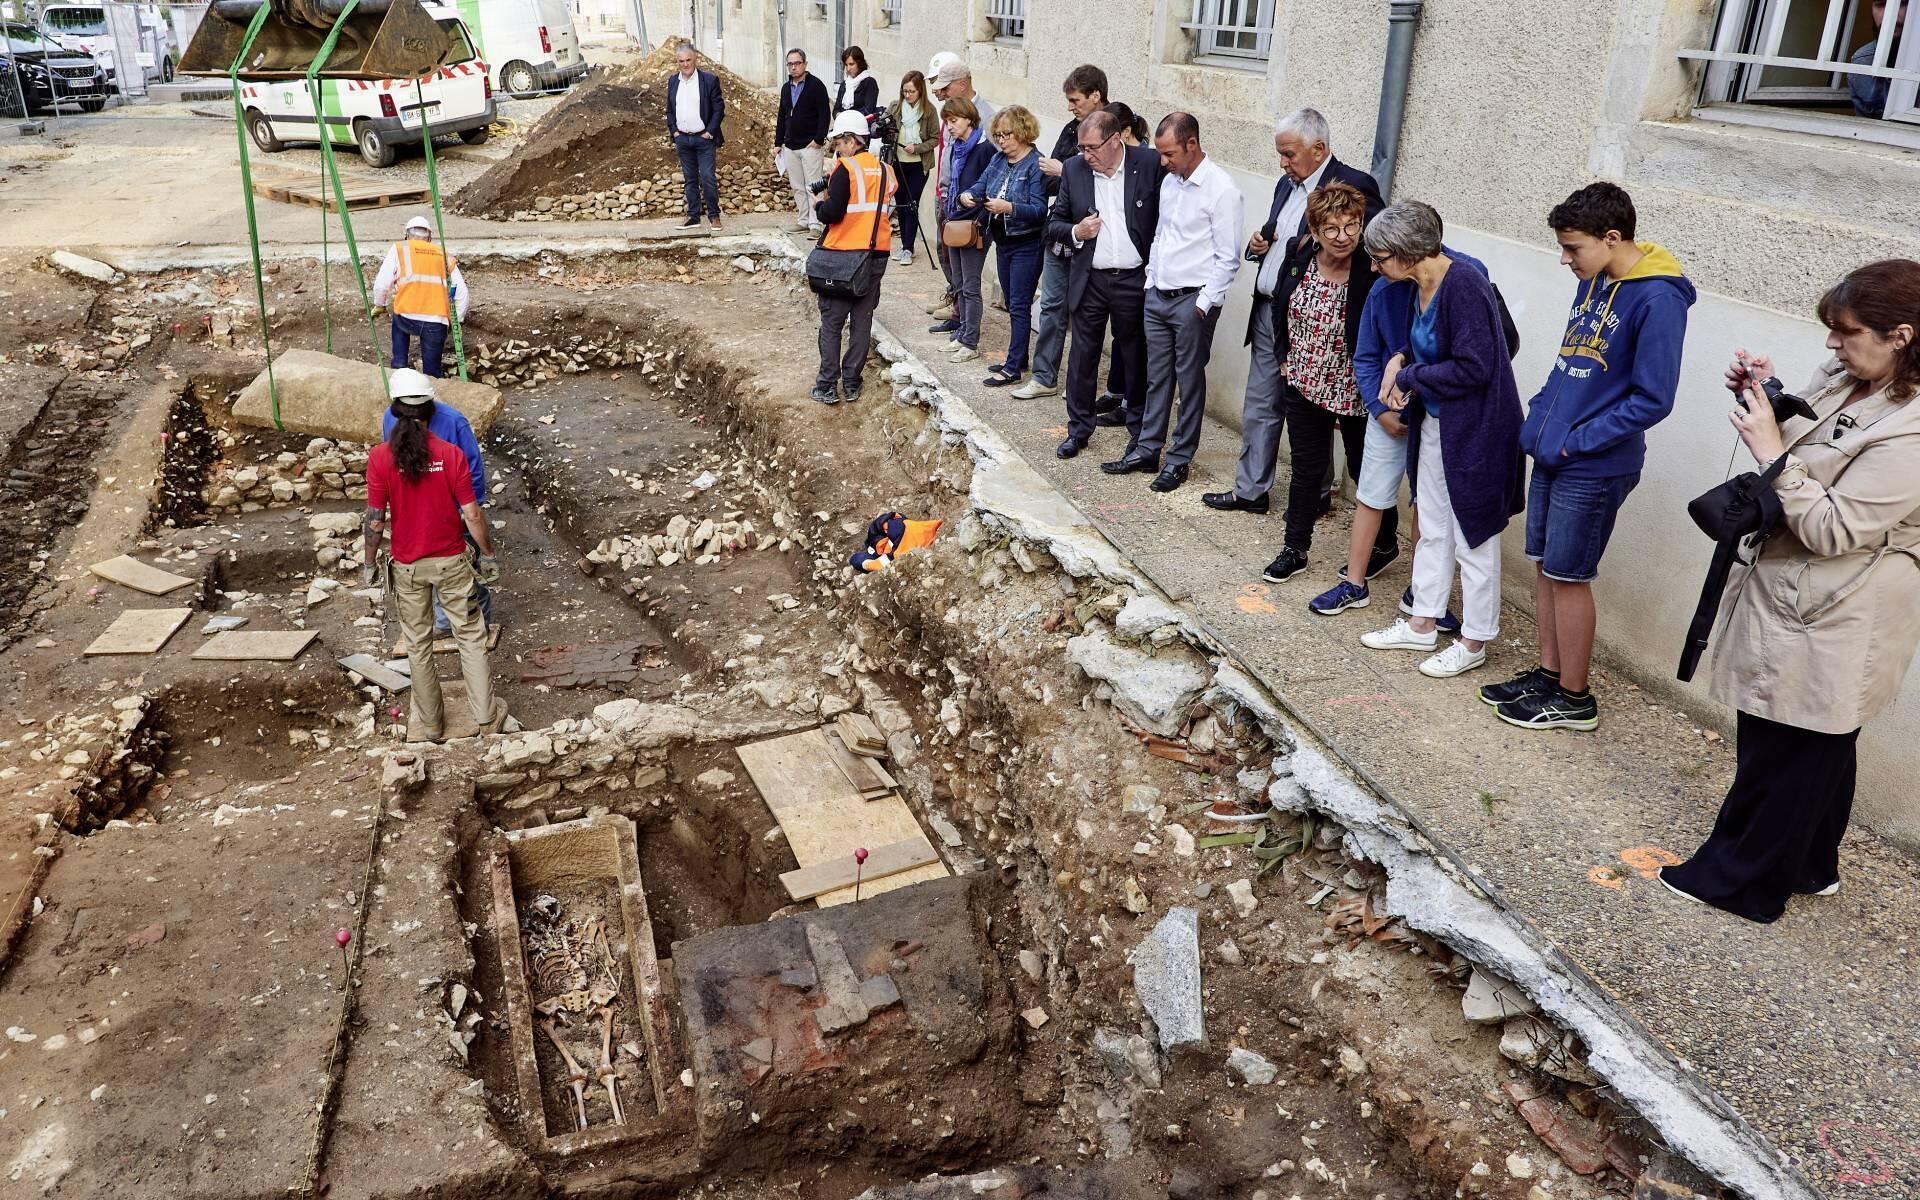 The excavation site of a 7th century Merovingian skeleton, Cahors, France, 15 August 2019.